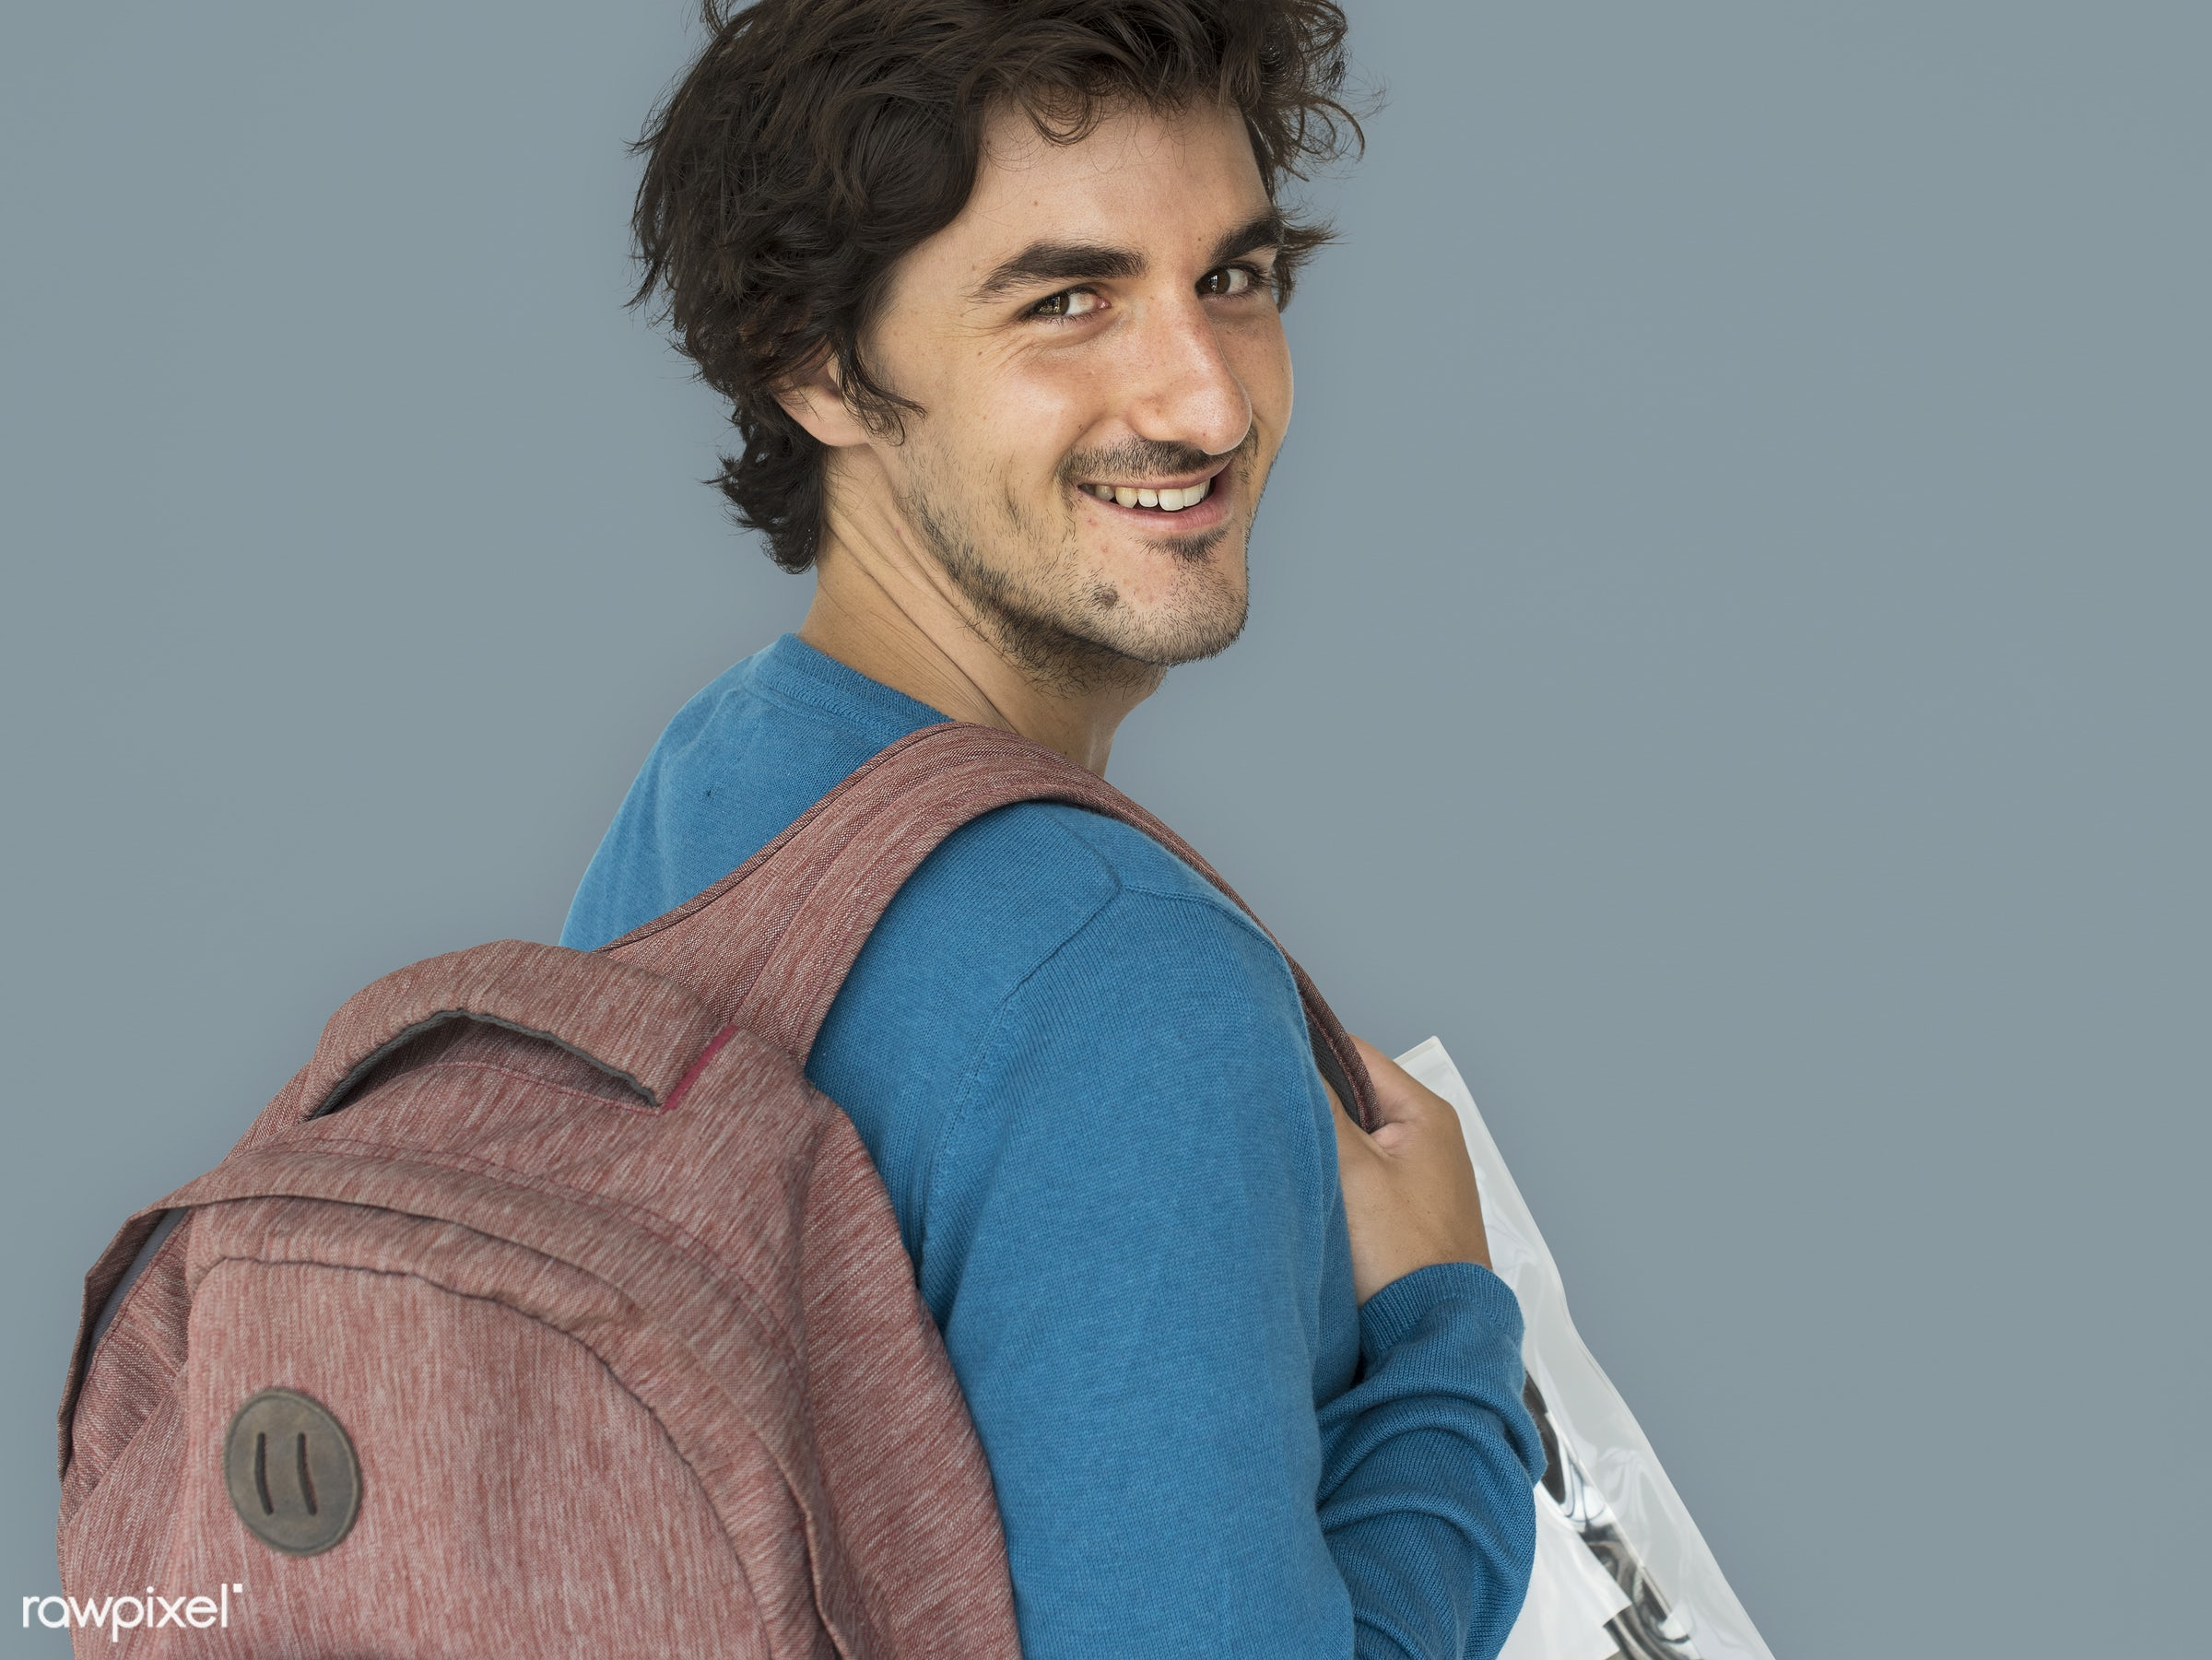 studio, expression, pastel, person, people, caucasian, lifestyle, schoolbag, positive, smile, cheerful, isolated, bag,...